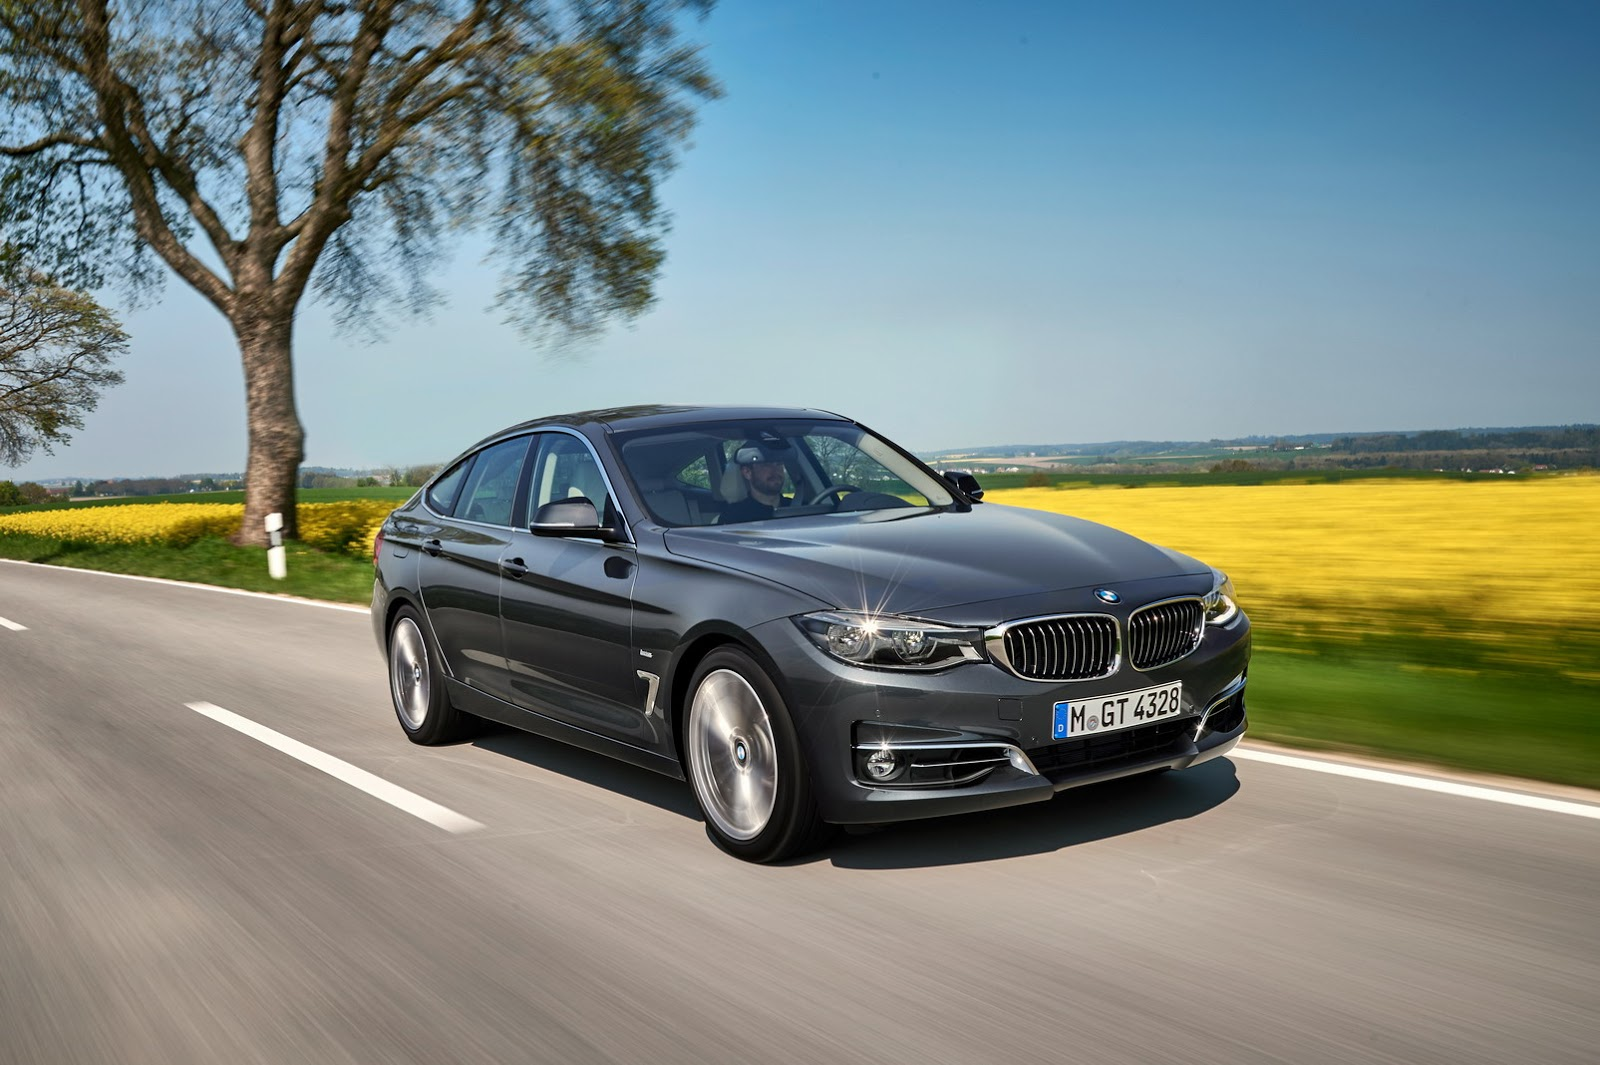 2017 bmw 3 series gran turismo facelift detailed in 60 photos carscoops. Black Bedroom Furniture Sets. Home Design Ideas